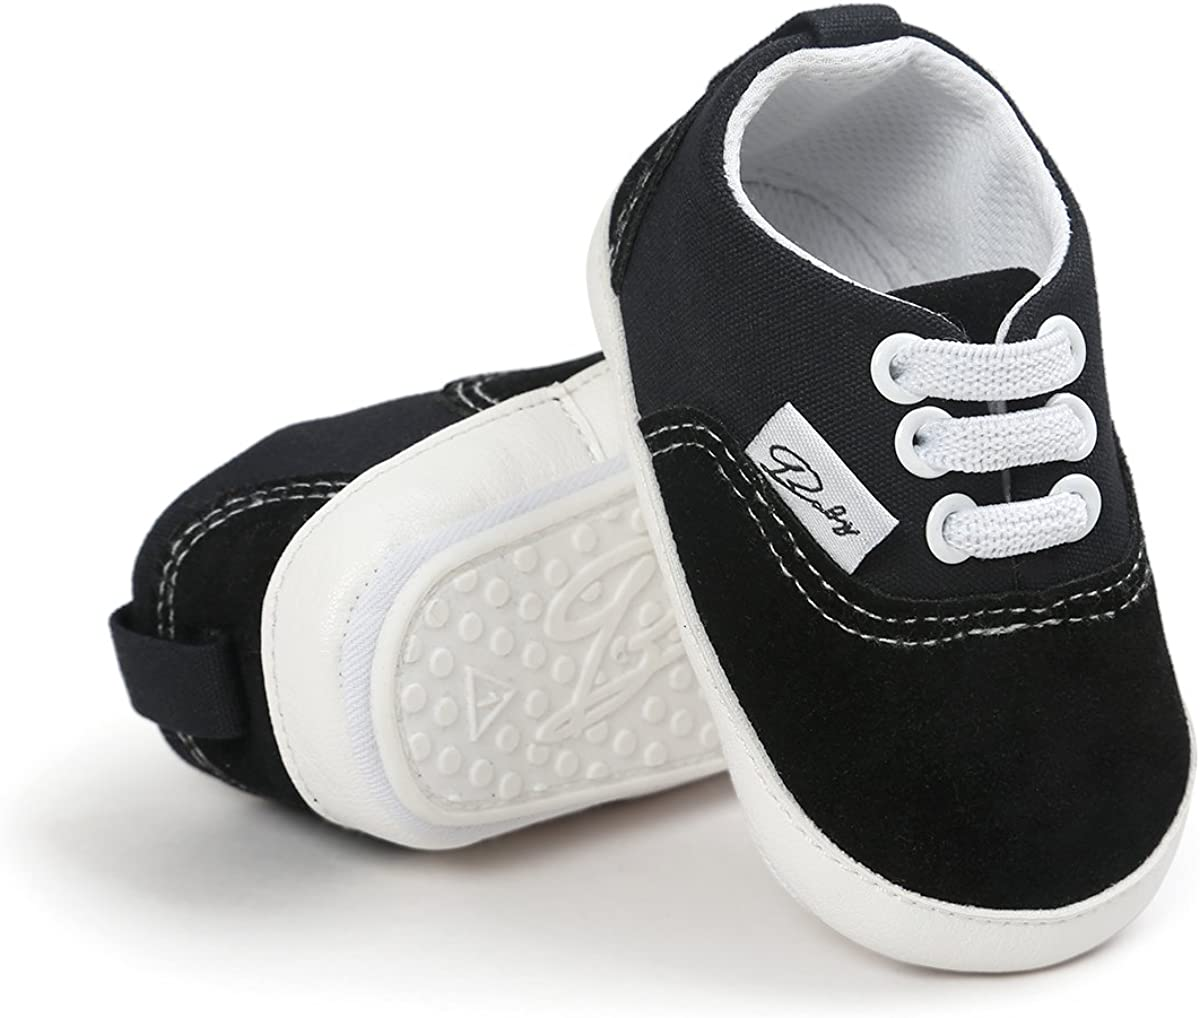   RVROVIC Baby Boys Girls Shoes Canvas Toddler Sneakers Anti-Slip Infant First Walkers 0-18 Months   Sneakers